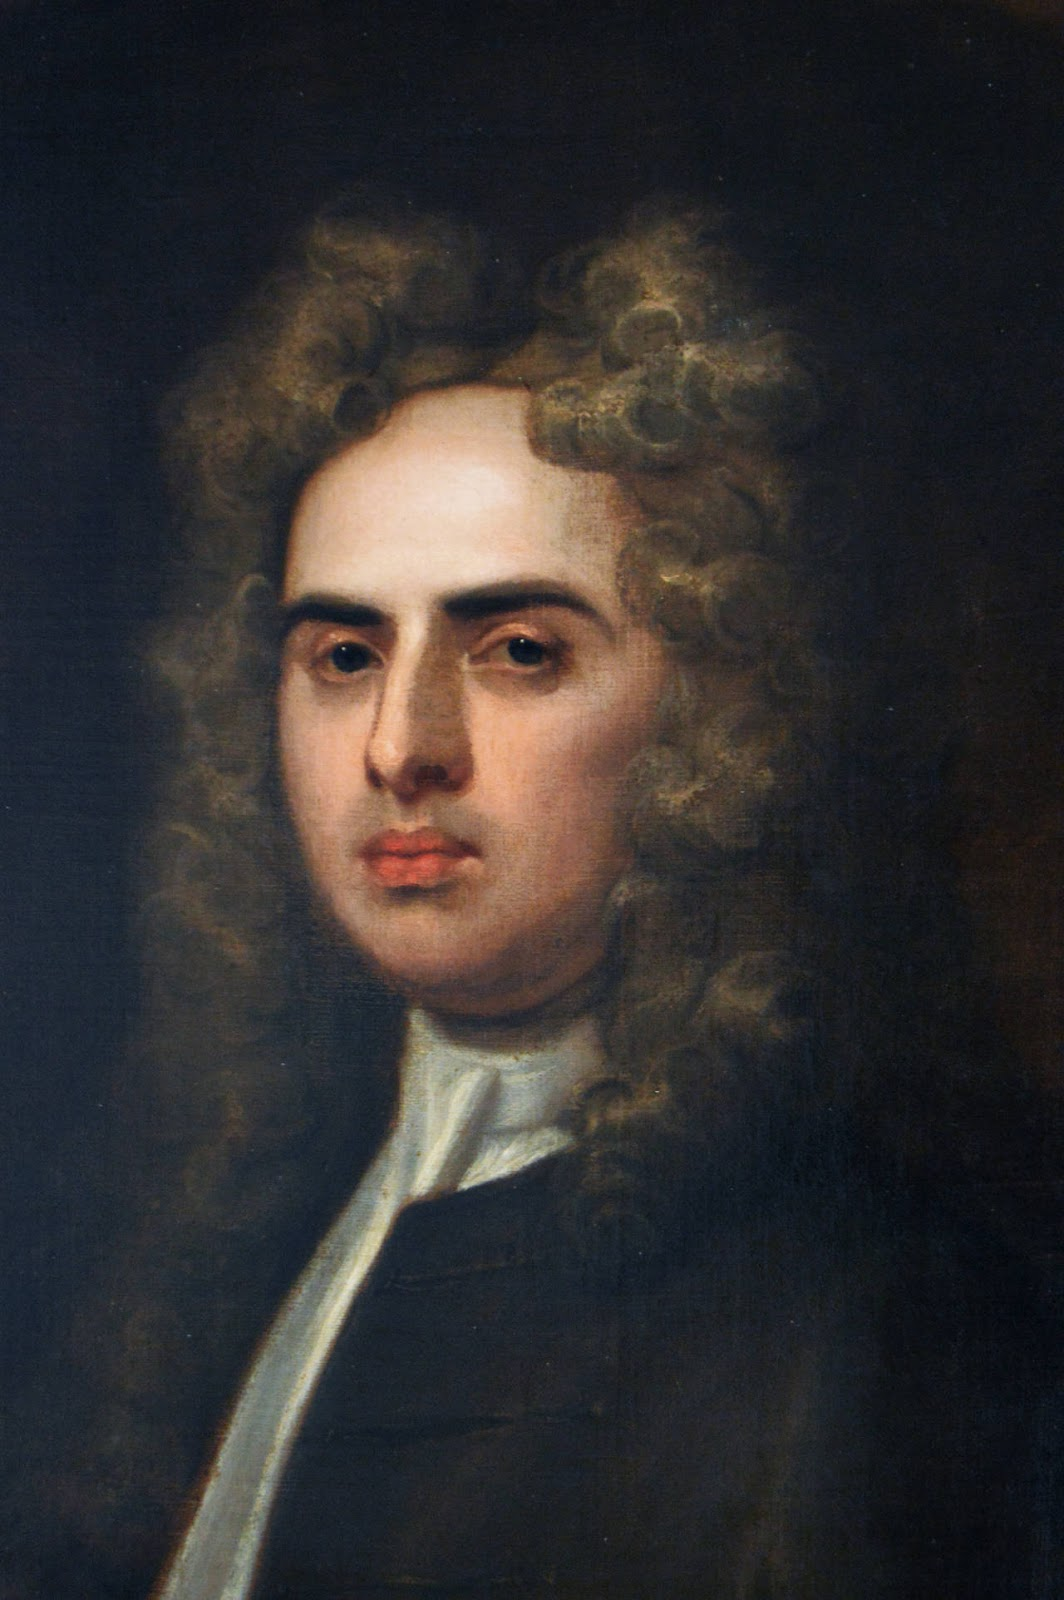 the dislike of jonathan swift with the current plantation system in ireland Chapter 6 examines the brutal nature of the british military justice system in the region, and chapters 7 and 8 treat the wars-one against a political enemy, the other against an epidemiological one.